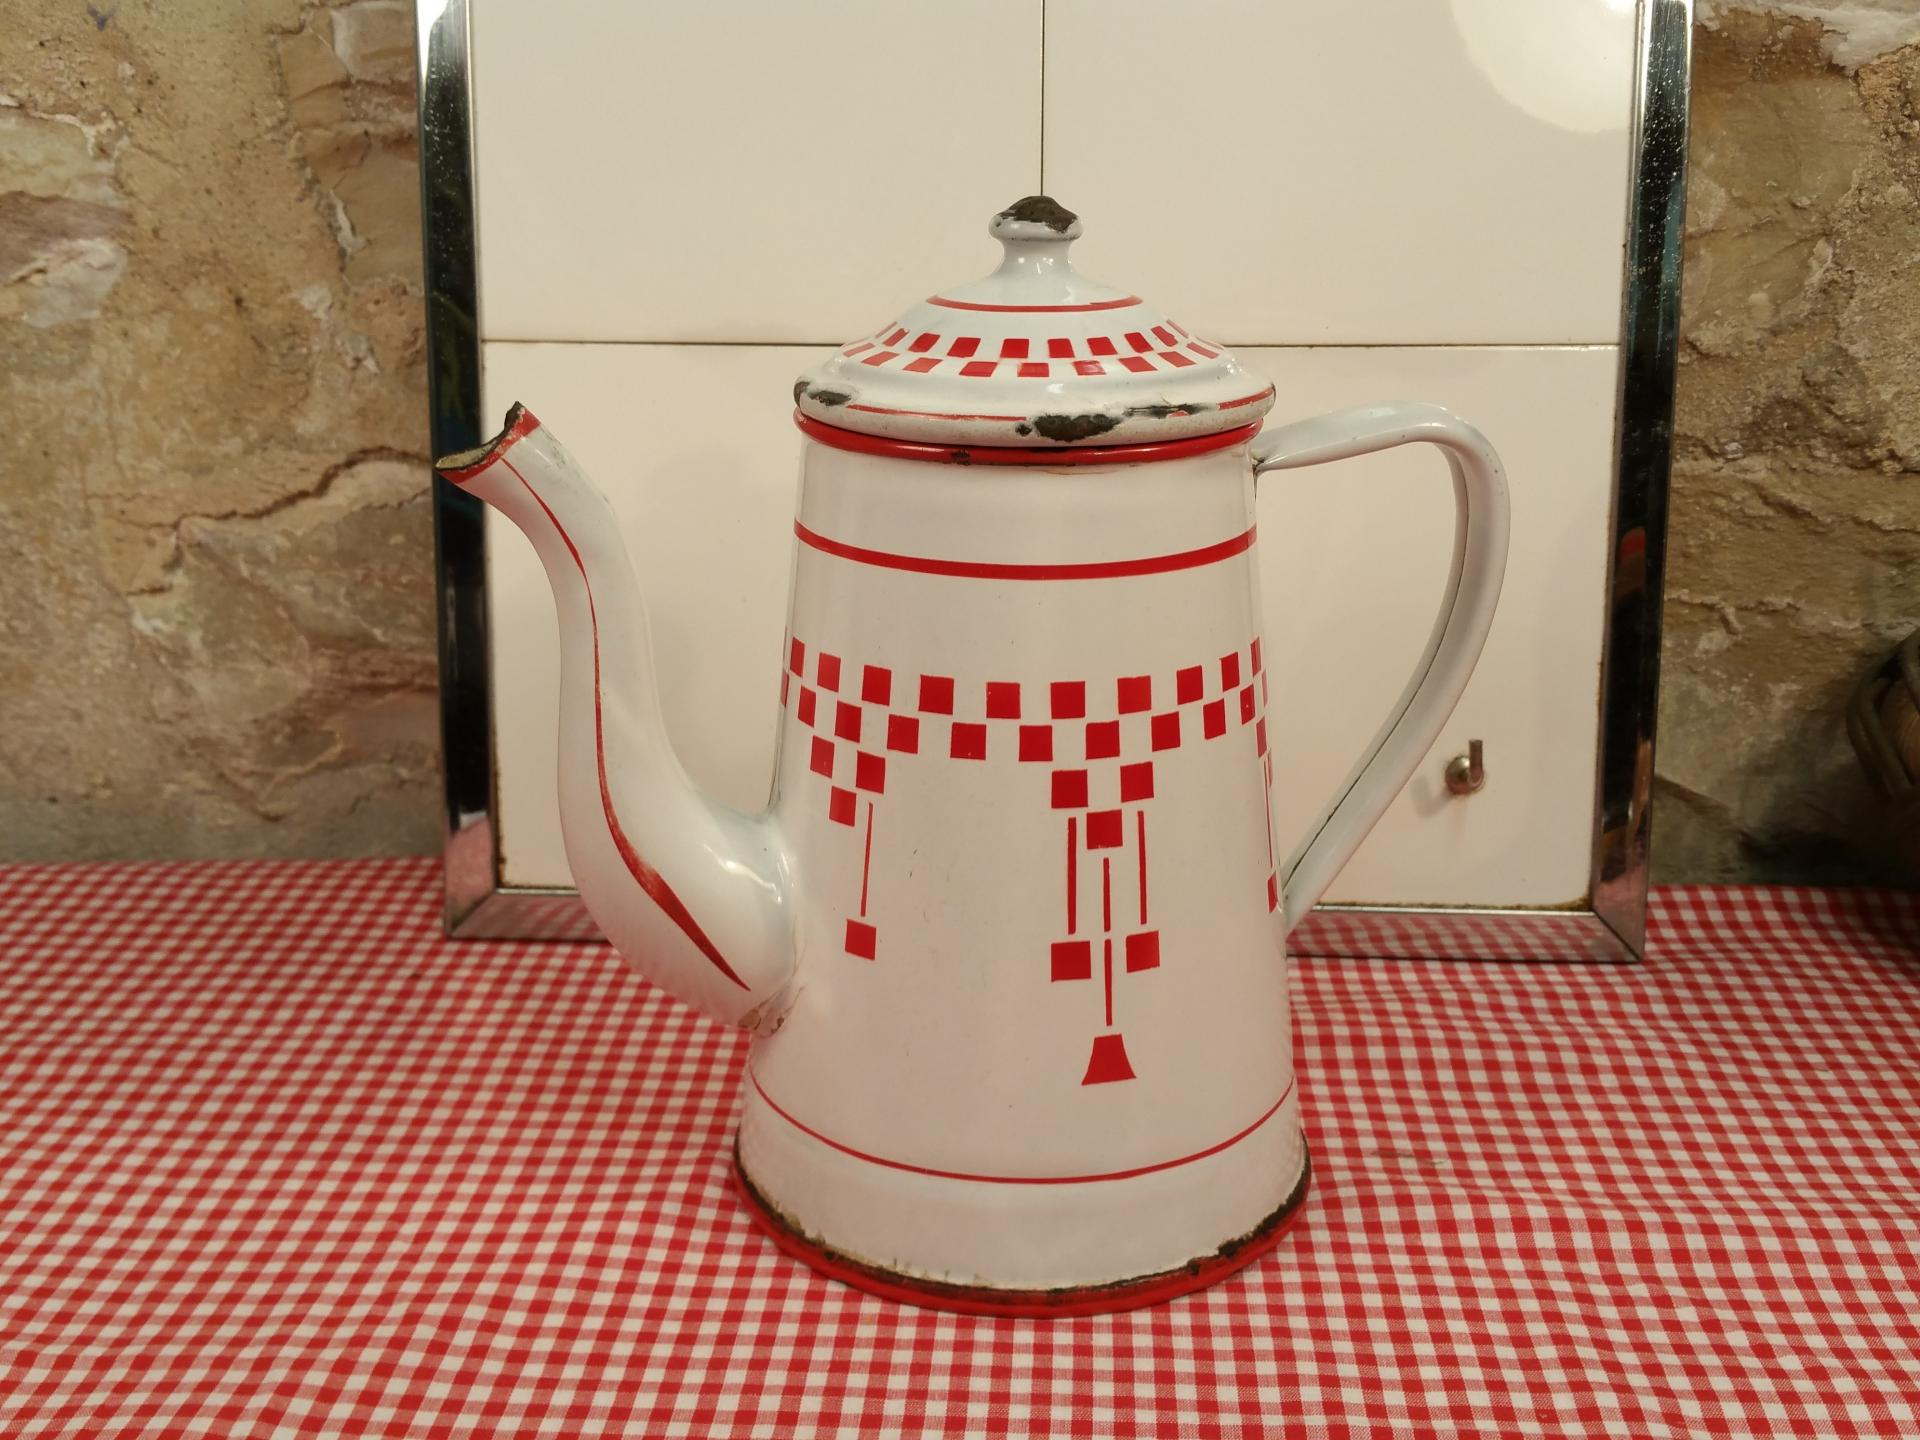 Lbc cafetiere emaillee blanche et rouge